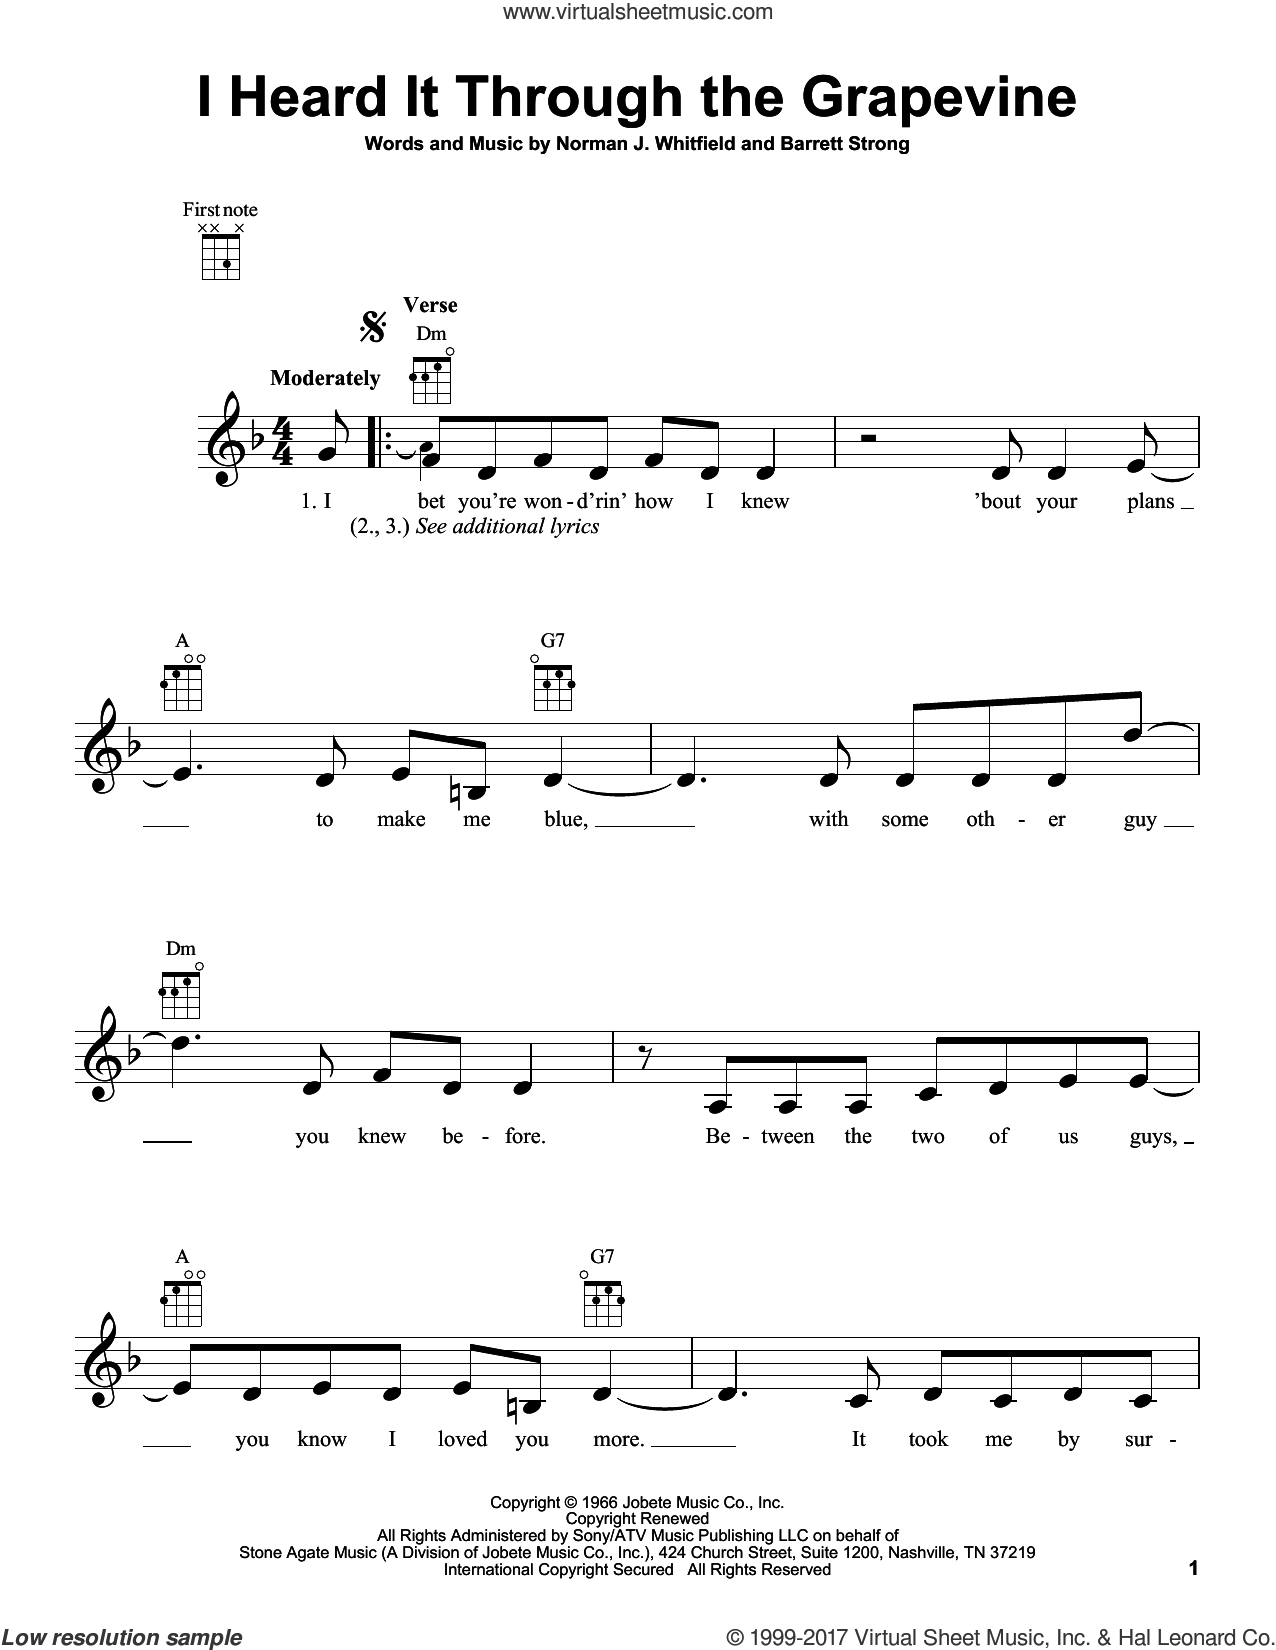 I Heard It Through The Grapevine sheet music for ukulele by Marvin Gaye, Gladys Knight & The Pips, Barrett Strong and Norman Whitfield, intermediate skill level